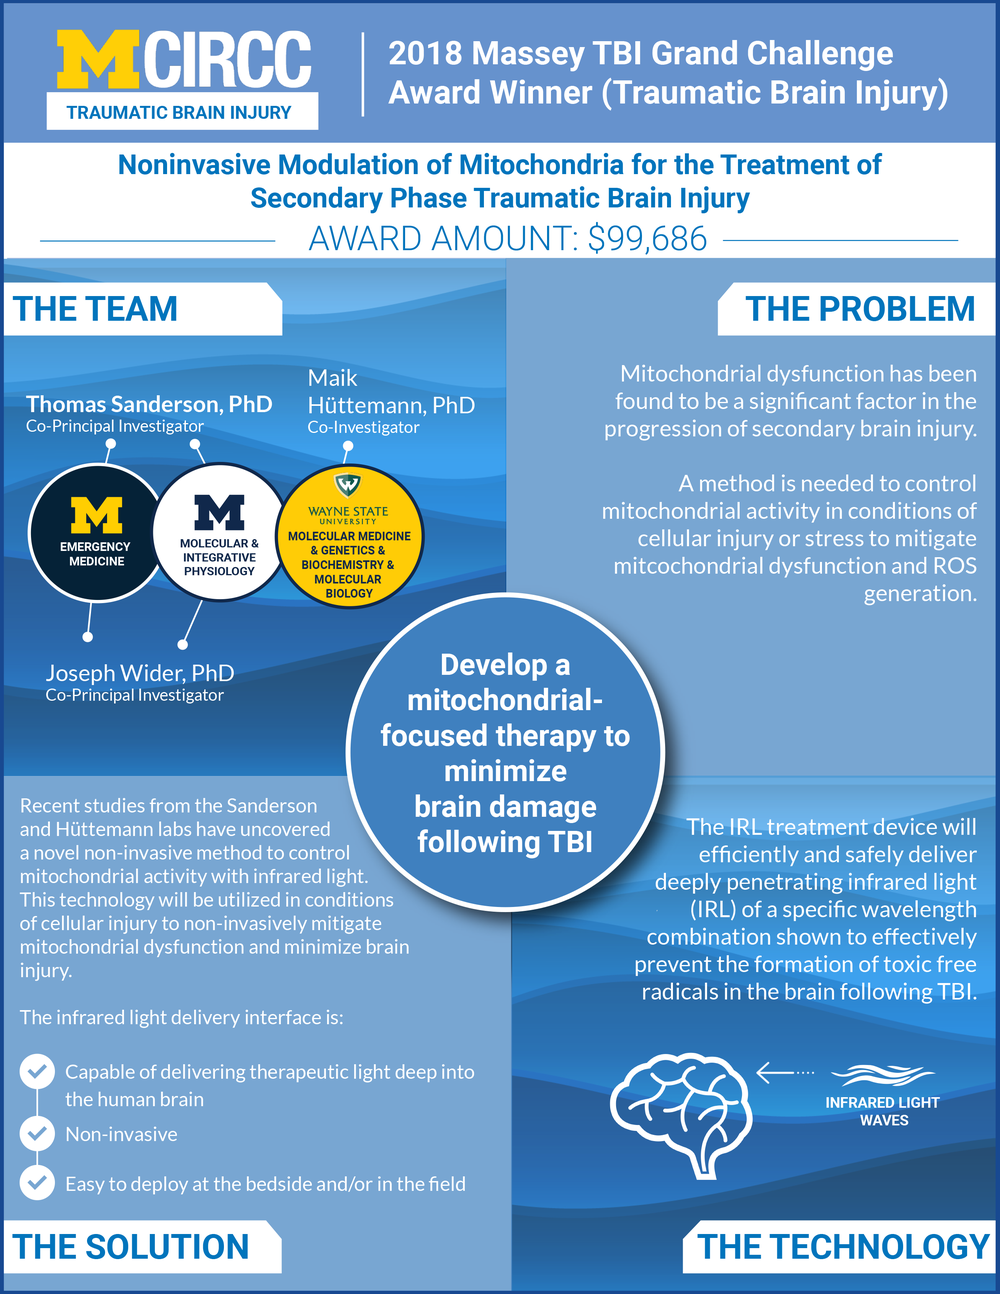 Noninvasive Modulation of Mitochondria for the Treatment of Secondary Phase Traumatic Brain Injury.png